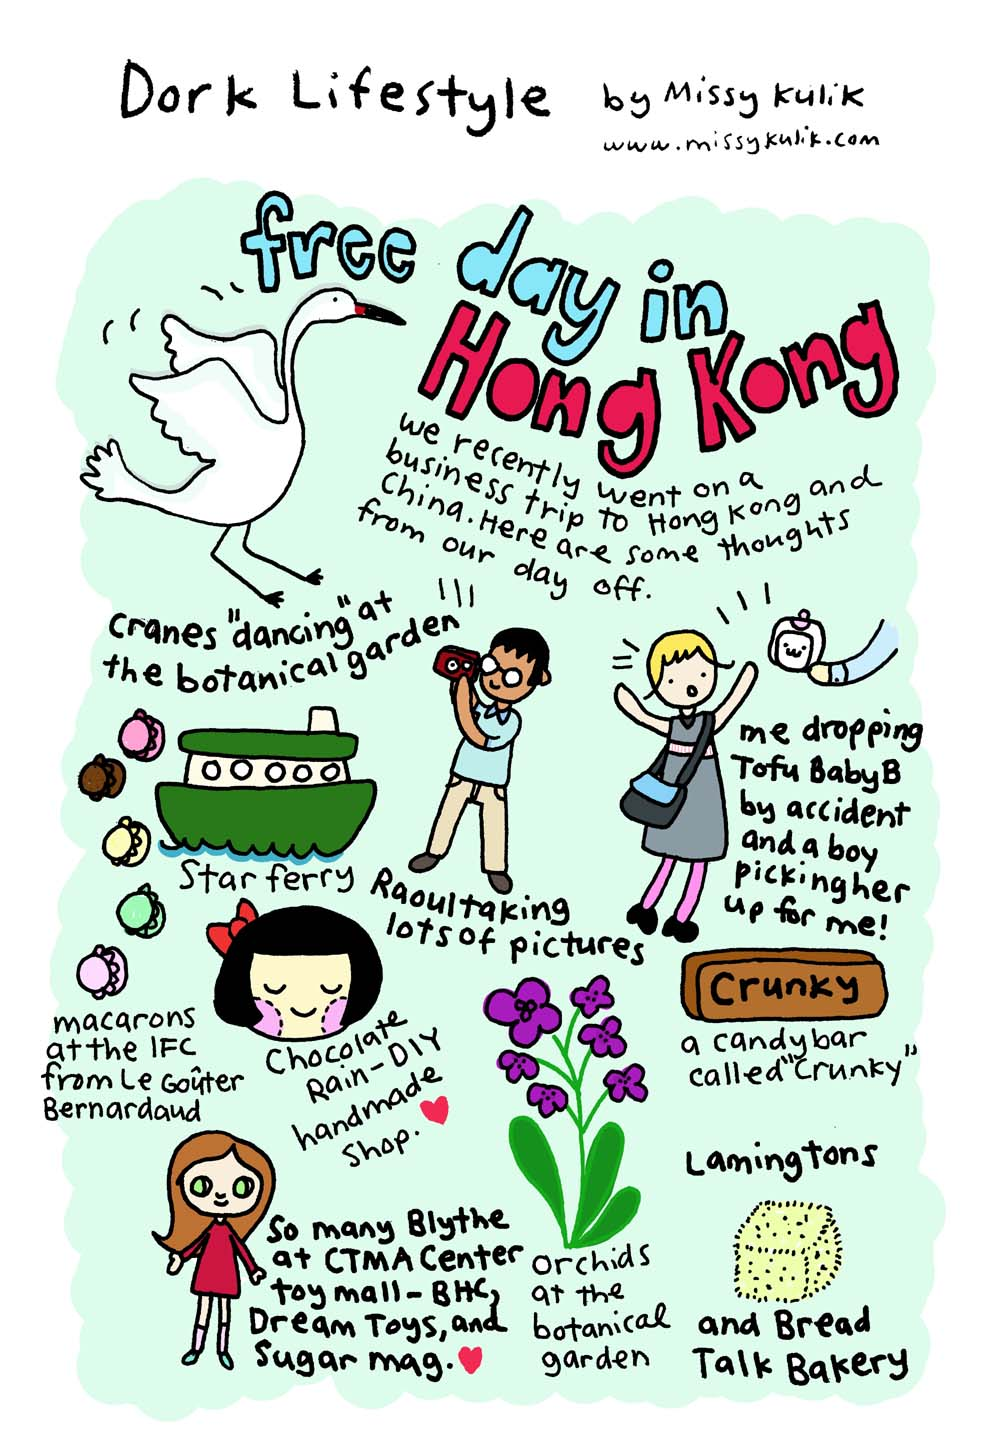 Dork Lifestyle: One Day For Fun In Hong Kong